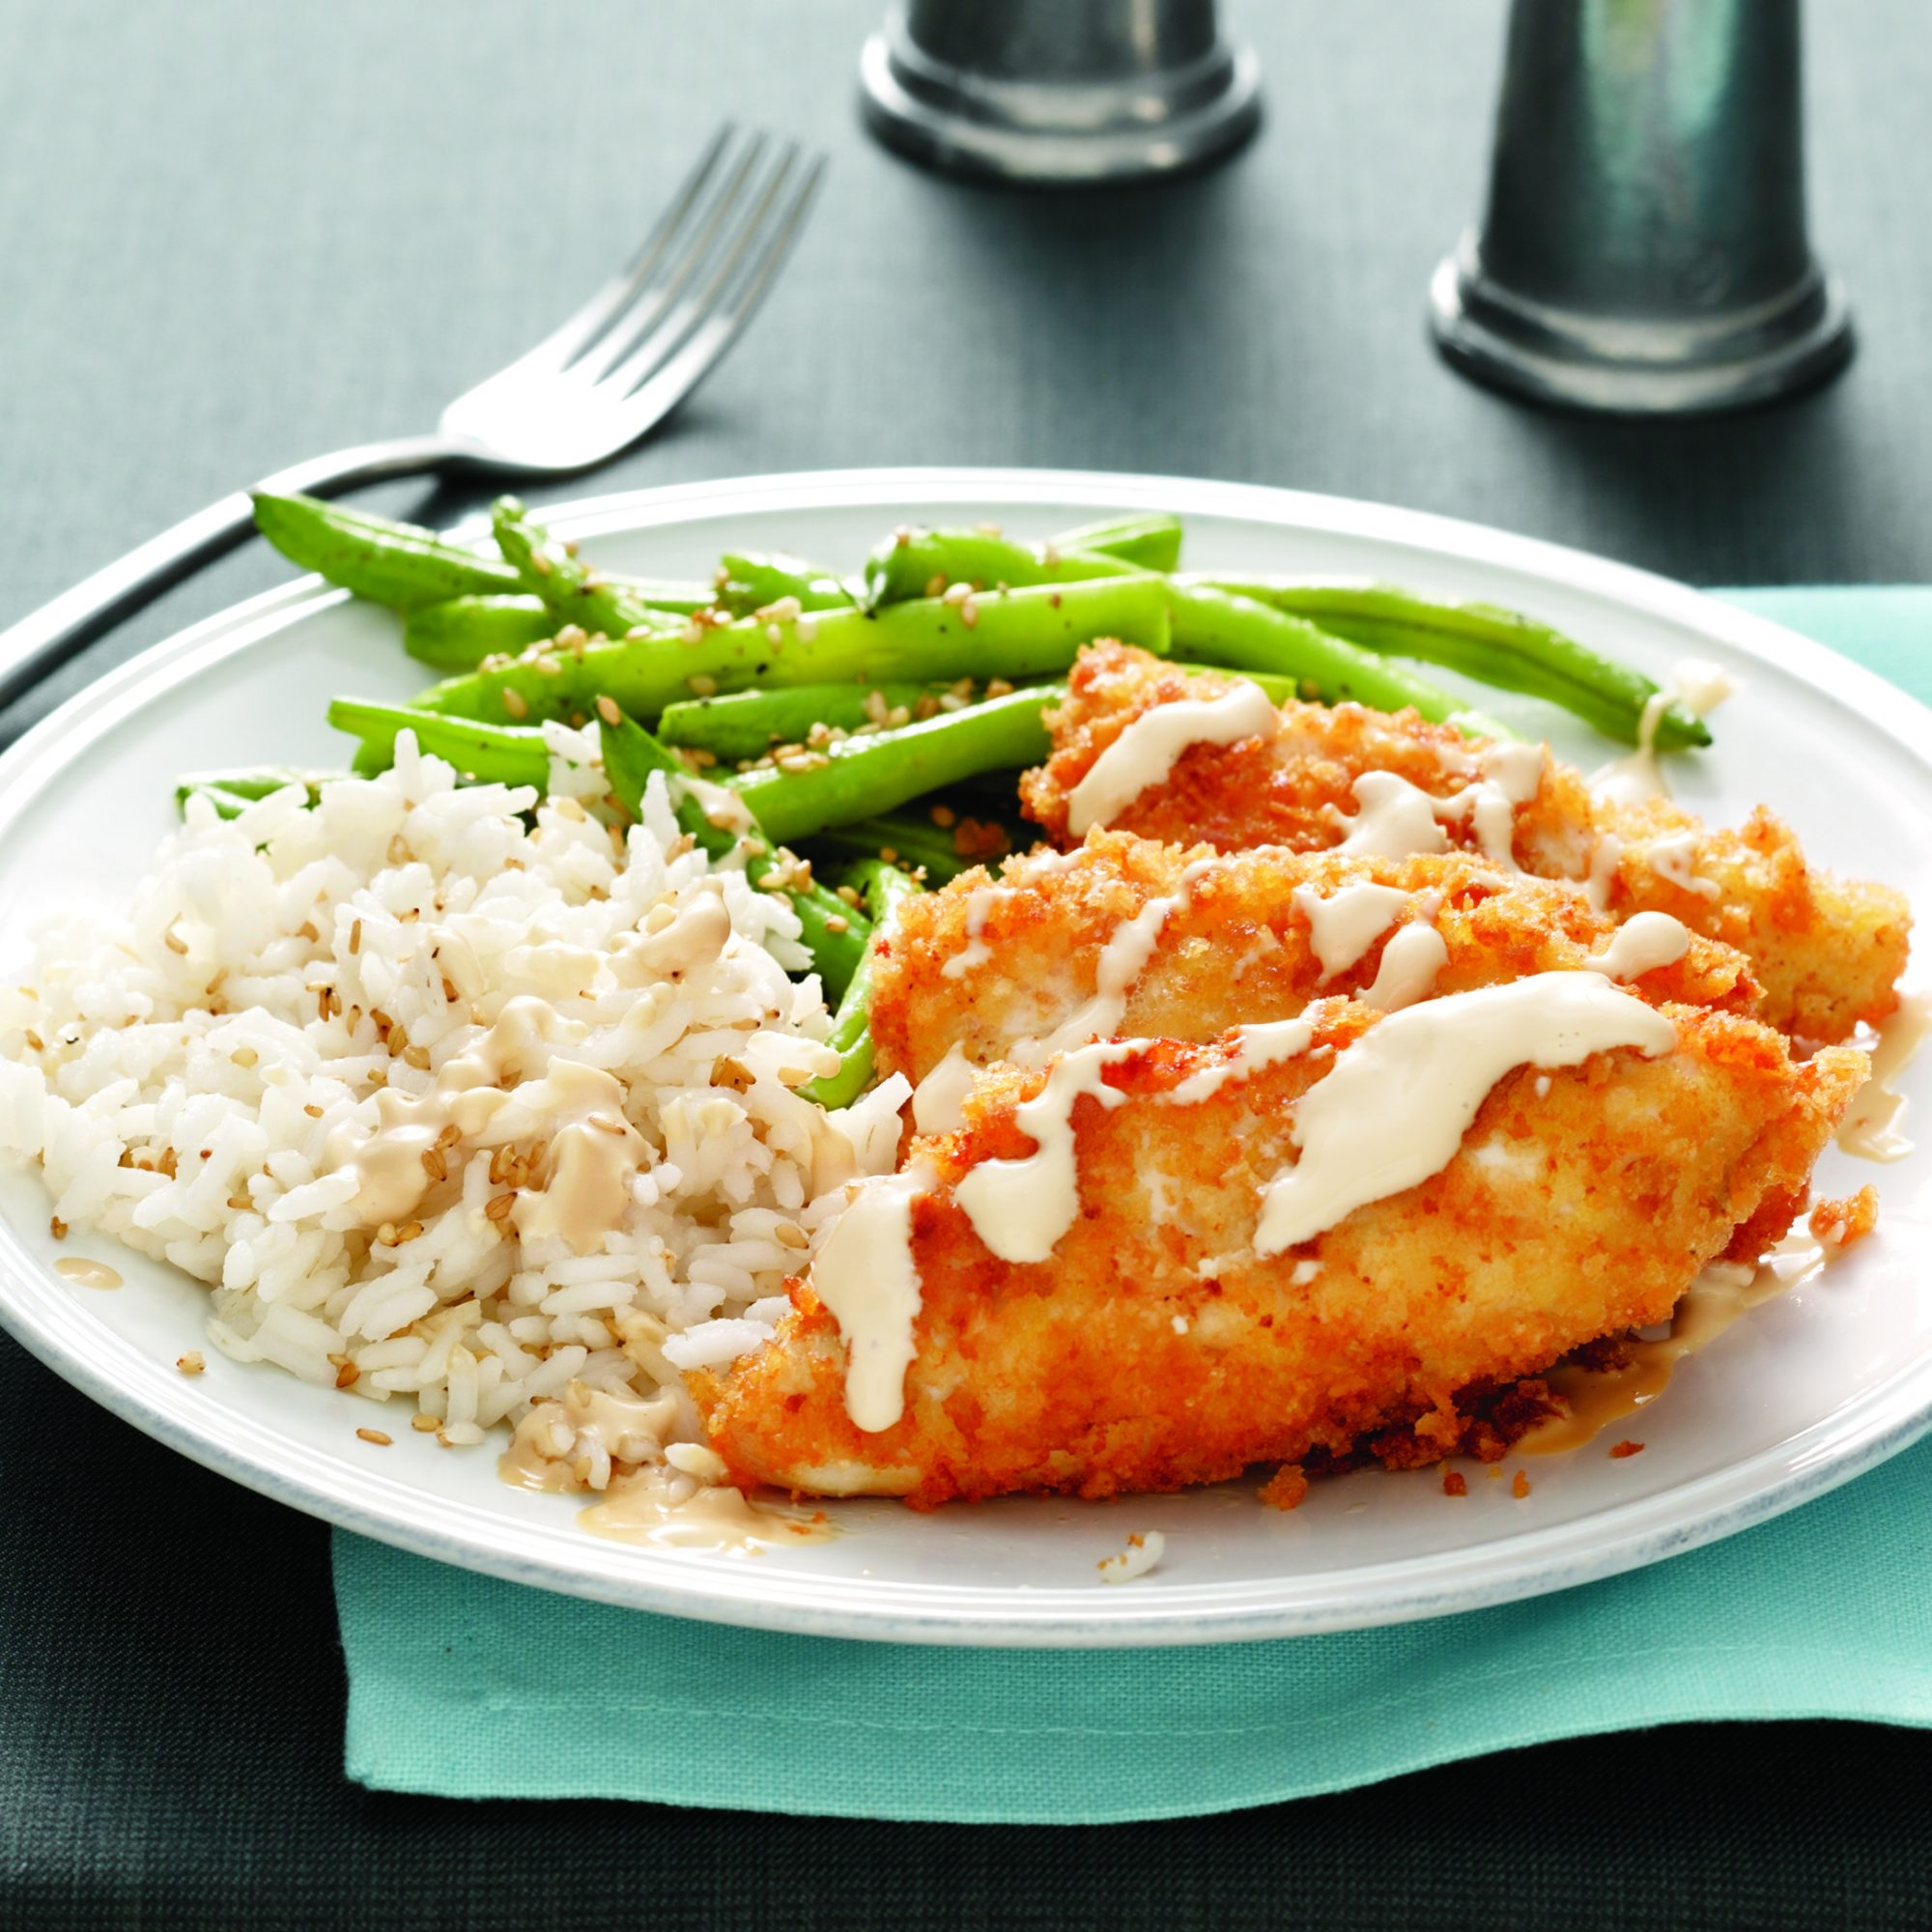 Crunchy Chicken with Sesame Rice and Green Beans